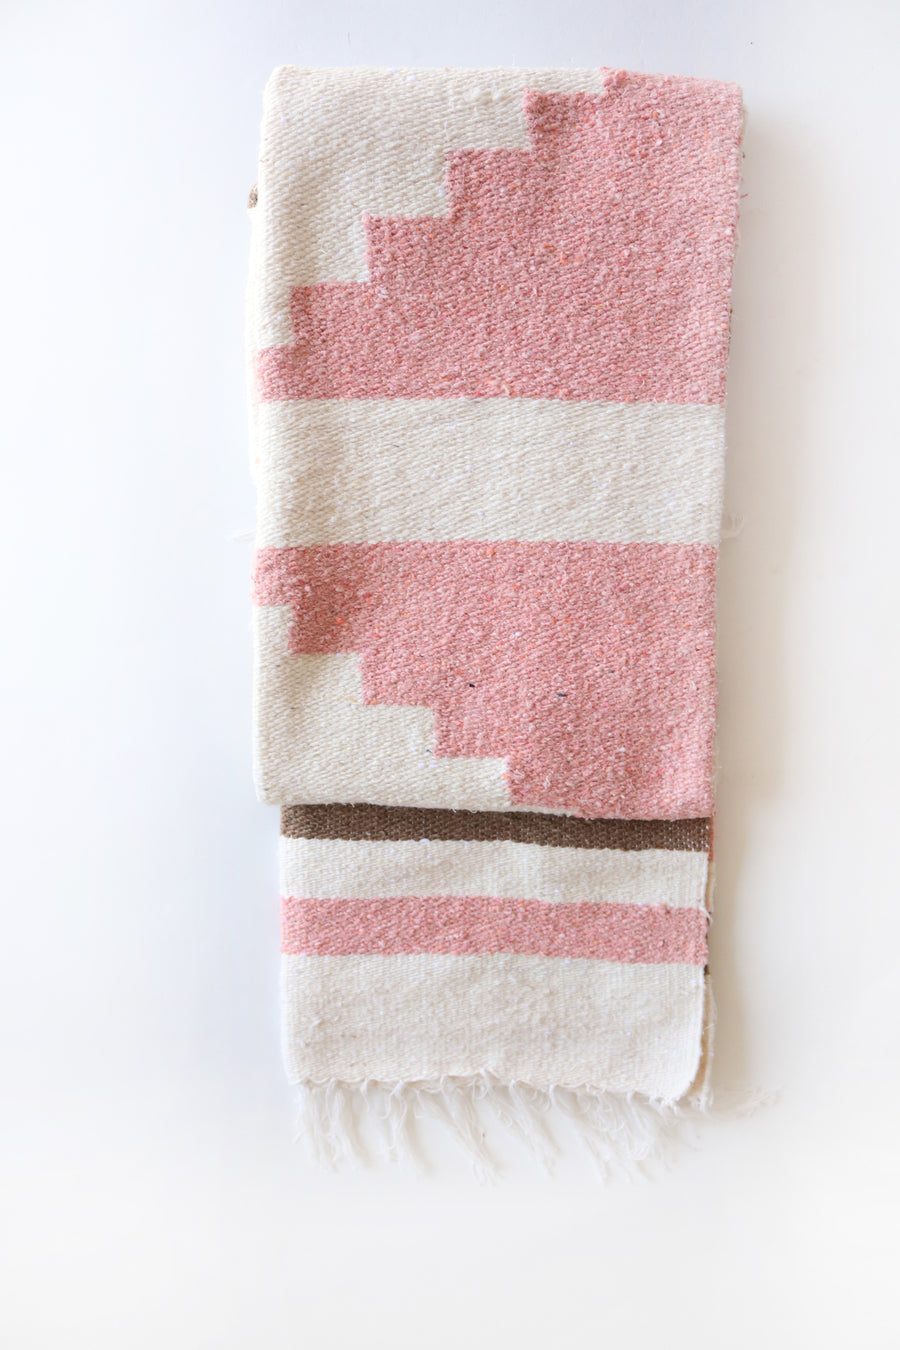 Canyon Rose // Handwoven Blanket (New Limited Edition)